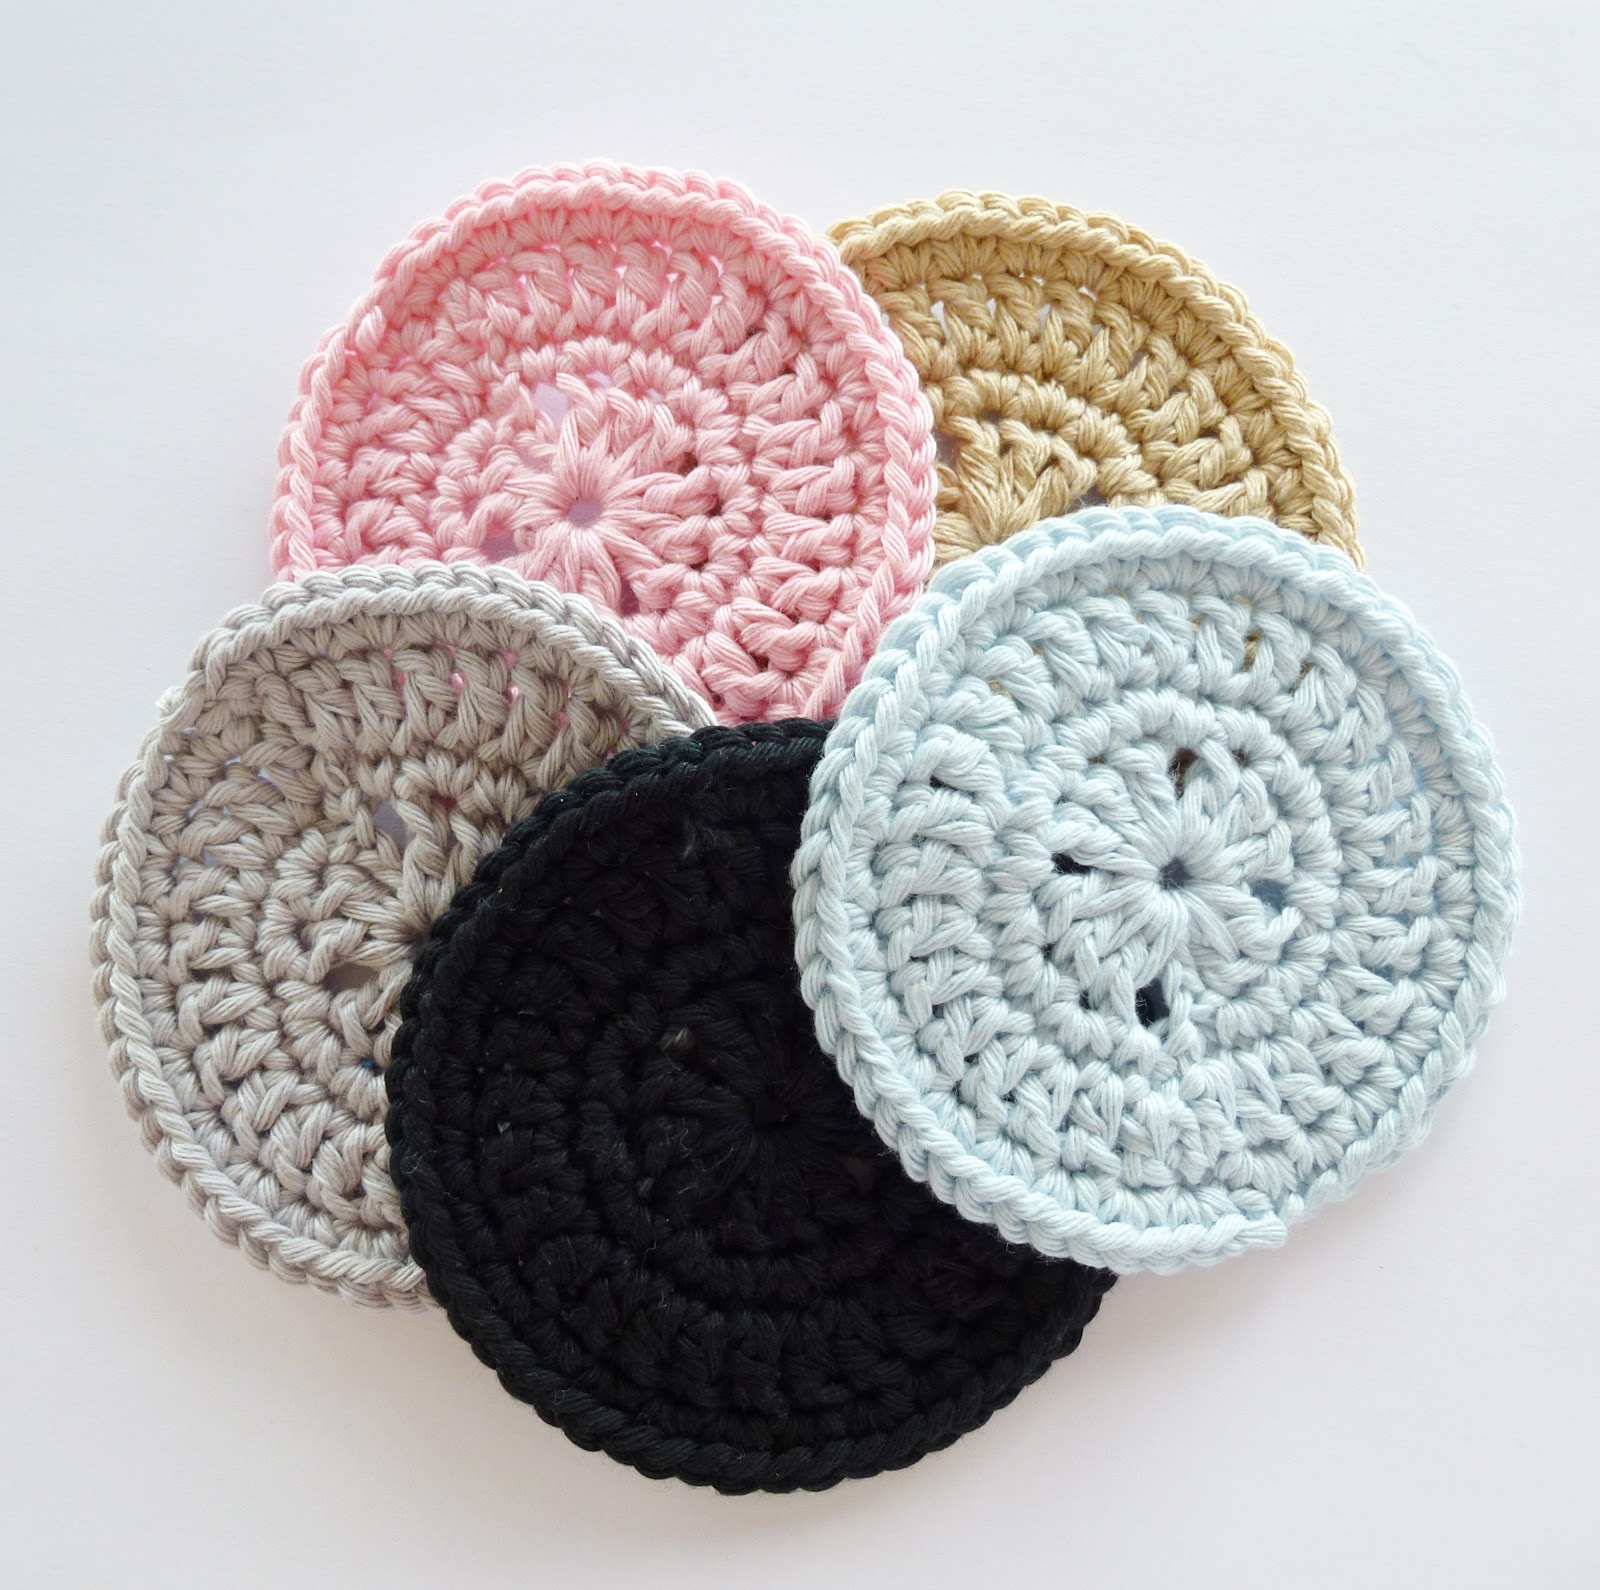 Annemaries Haakblog: Happy Coaster Pattern